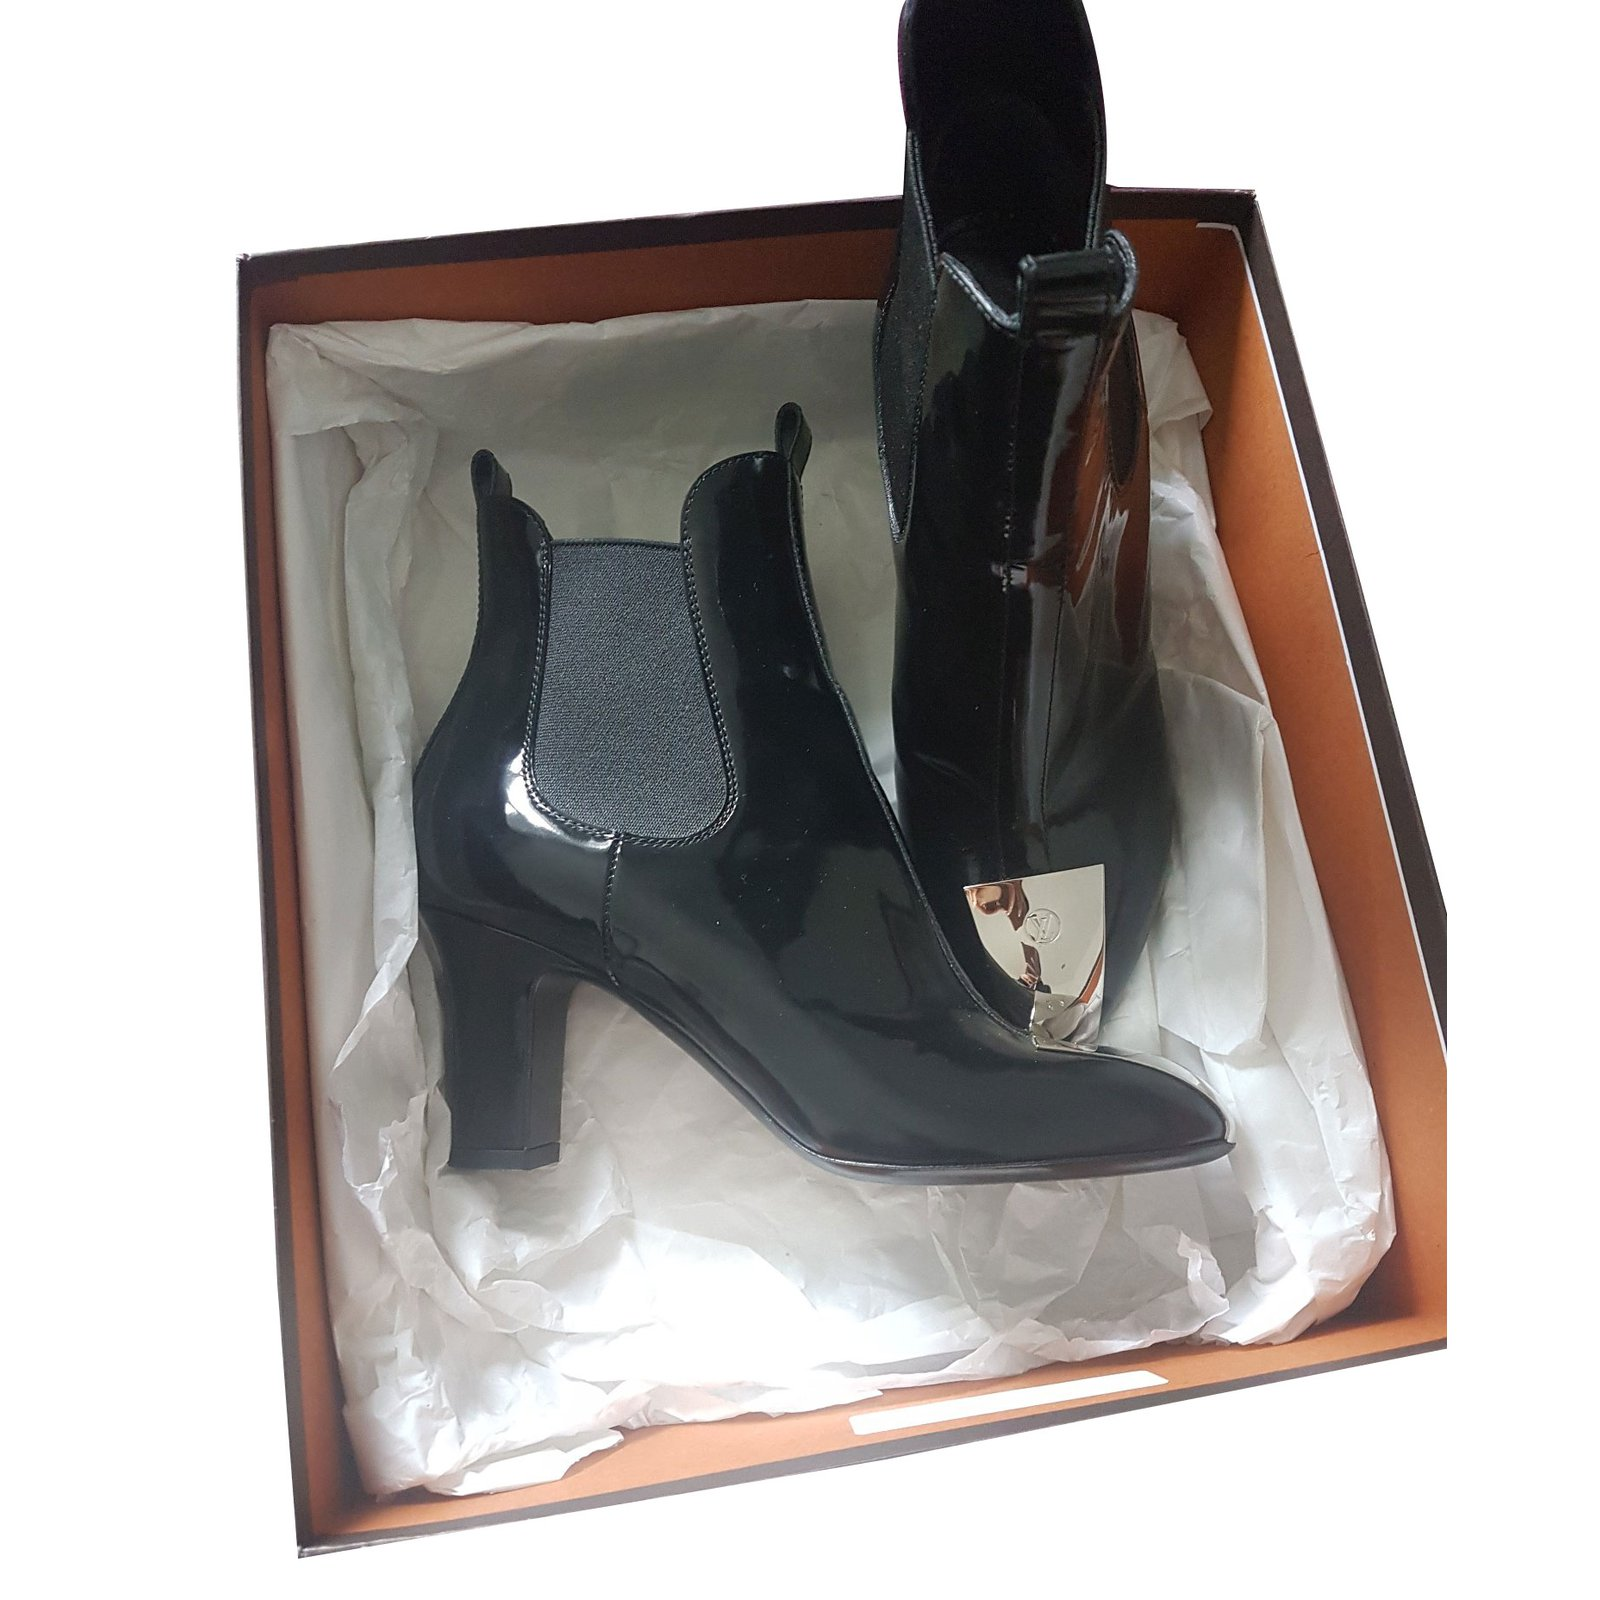 aca66685155d Louis Vuitton Cosplay Ankle Boots Ankle Boots Patent leather Black  ref.44516 - Joli Closet